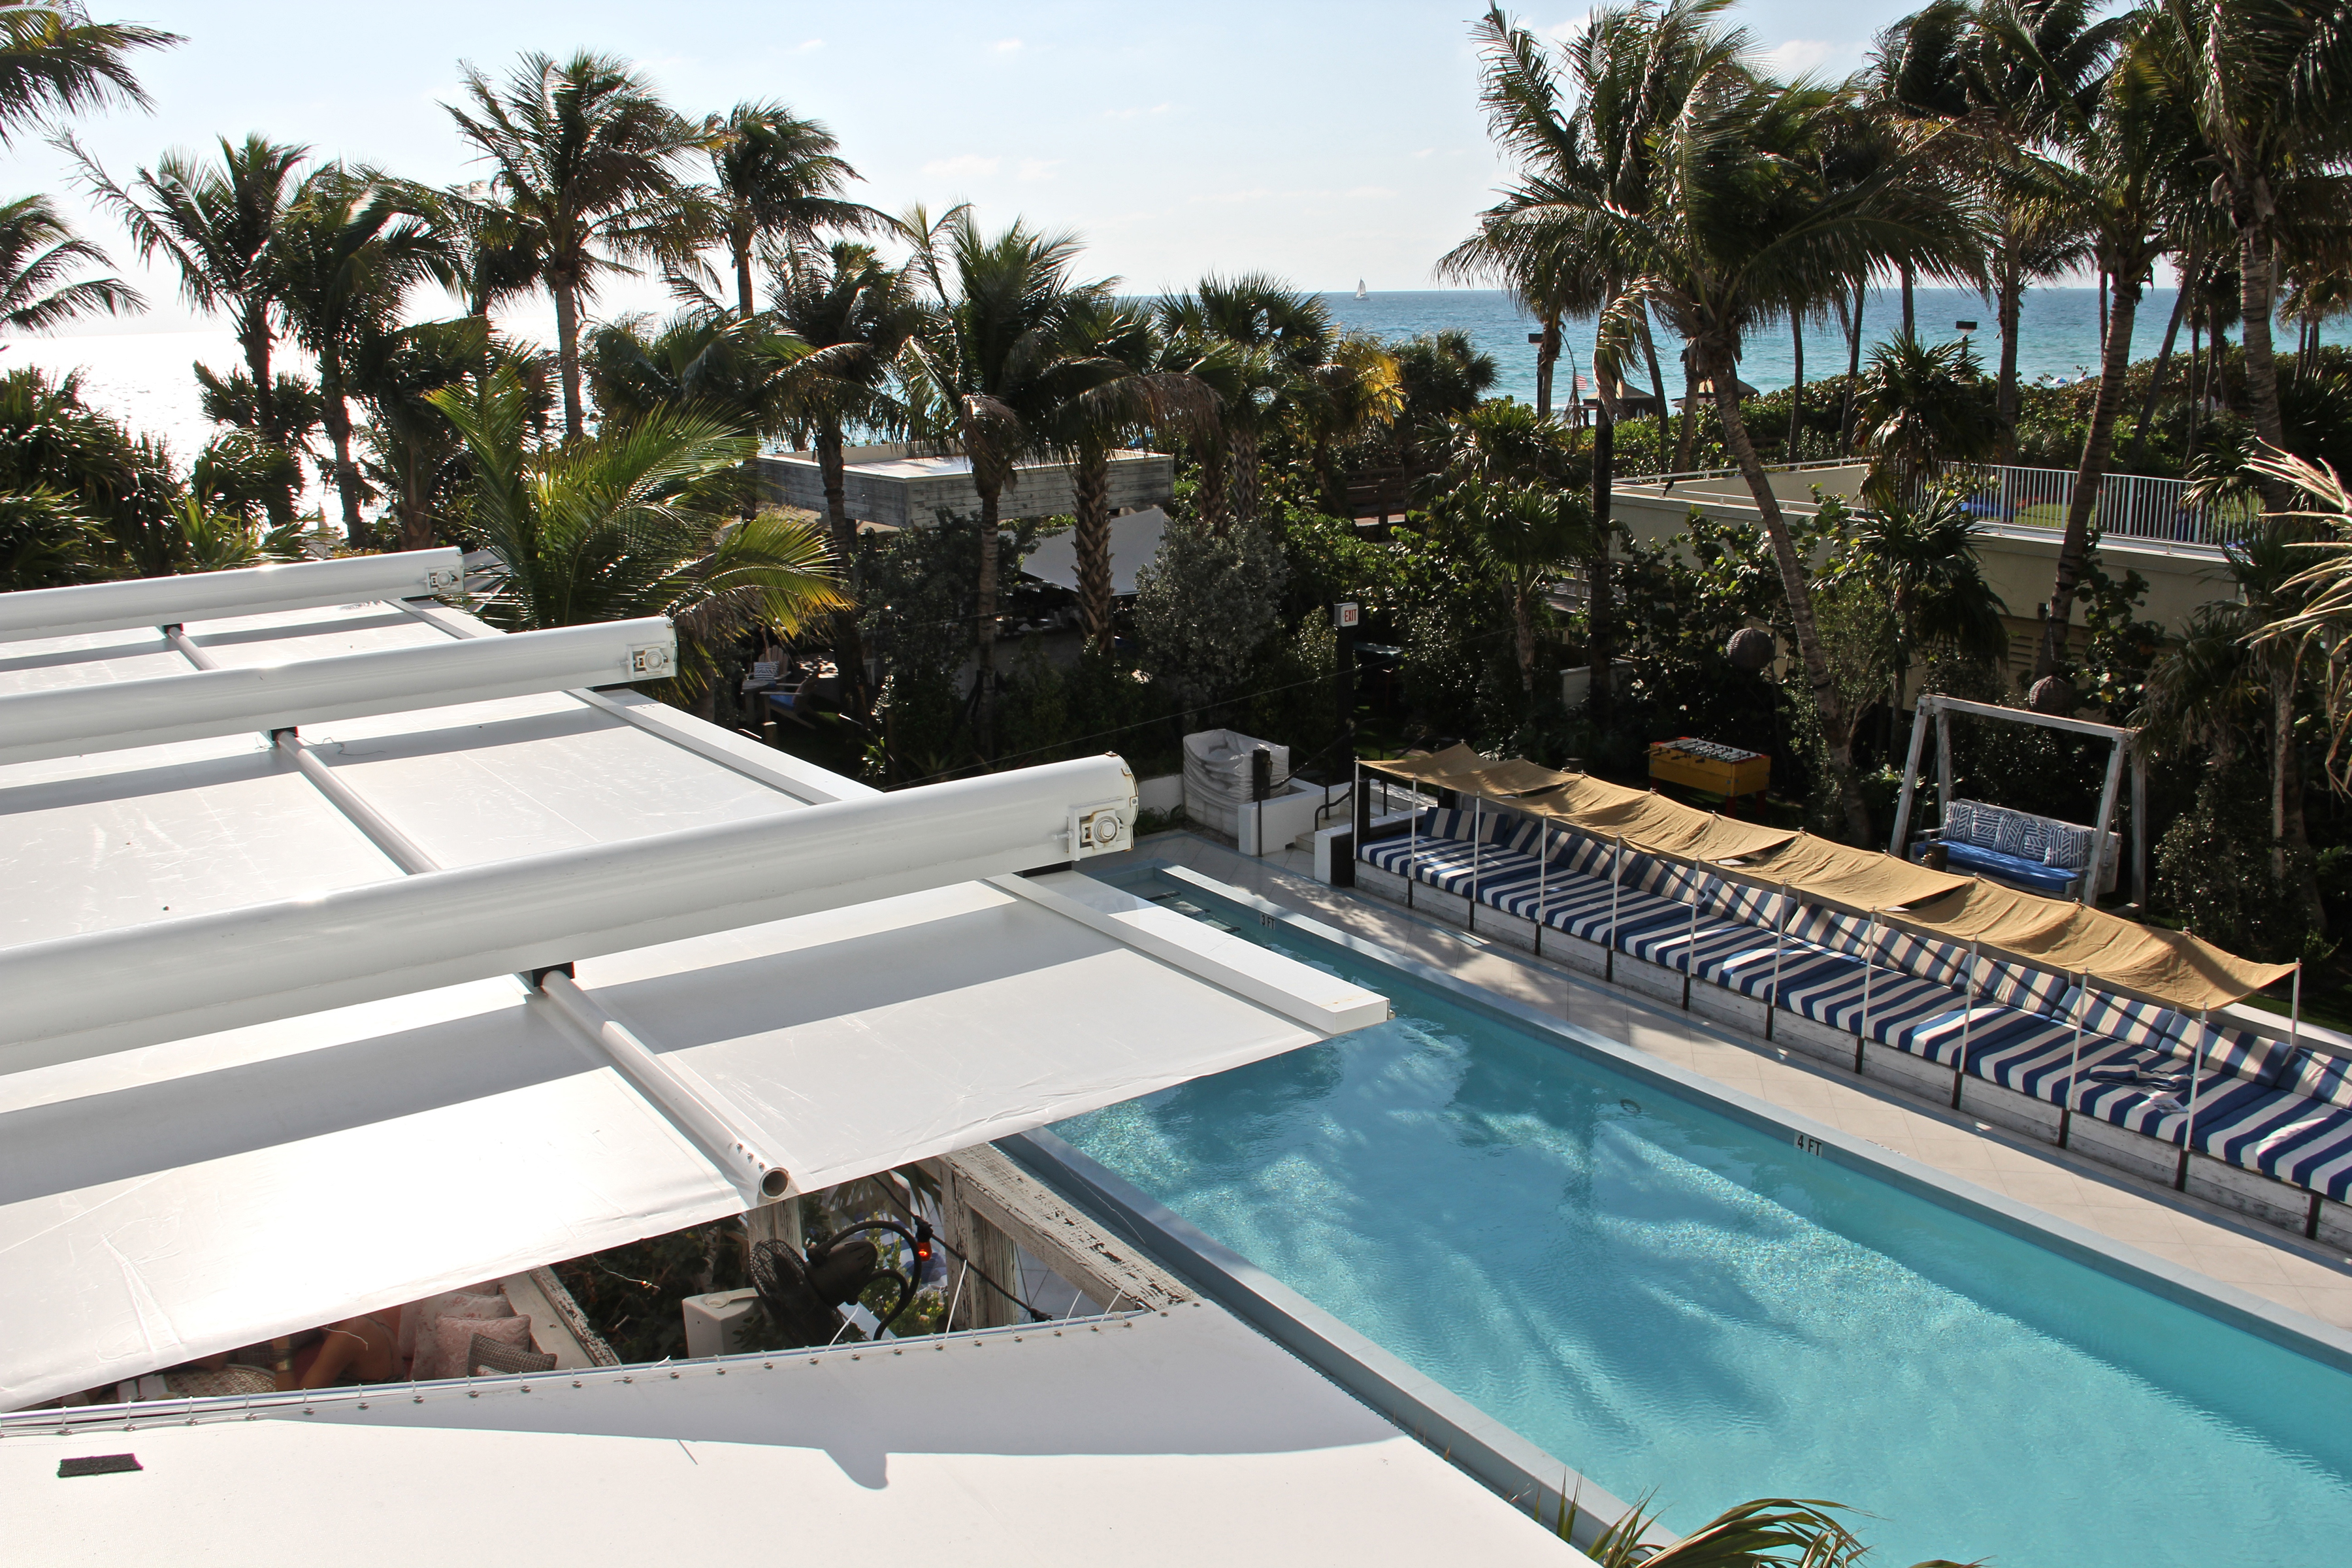 gardens room in florida view ac hotel beach miami travel on miaac collins guestroom avenue hor city mid garden cheap clsc hotels